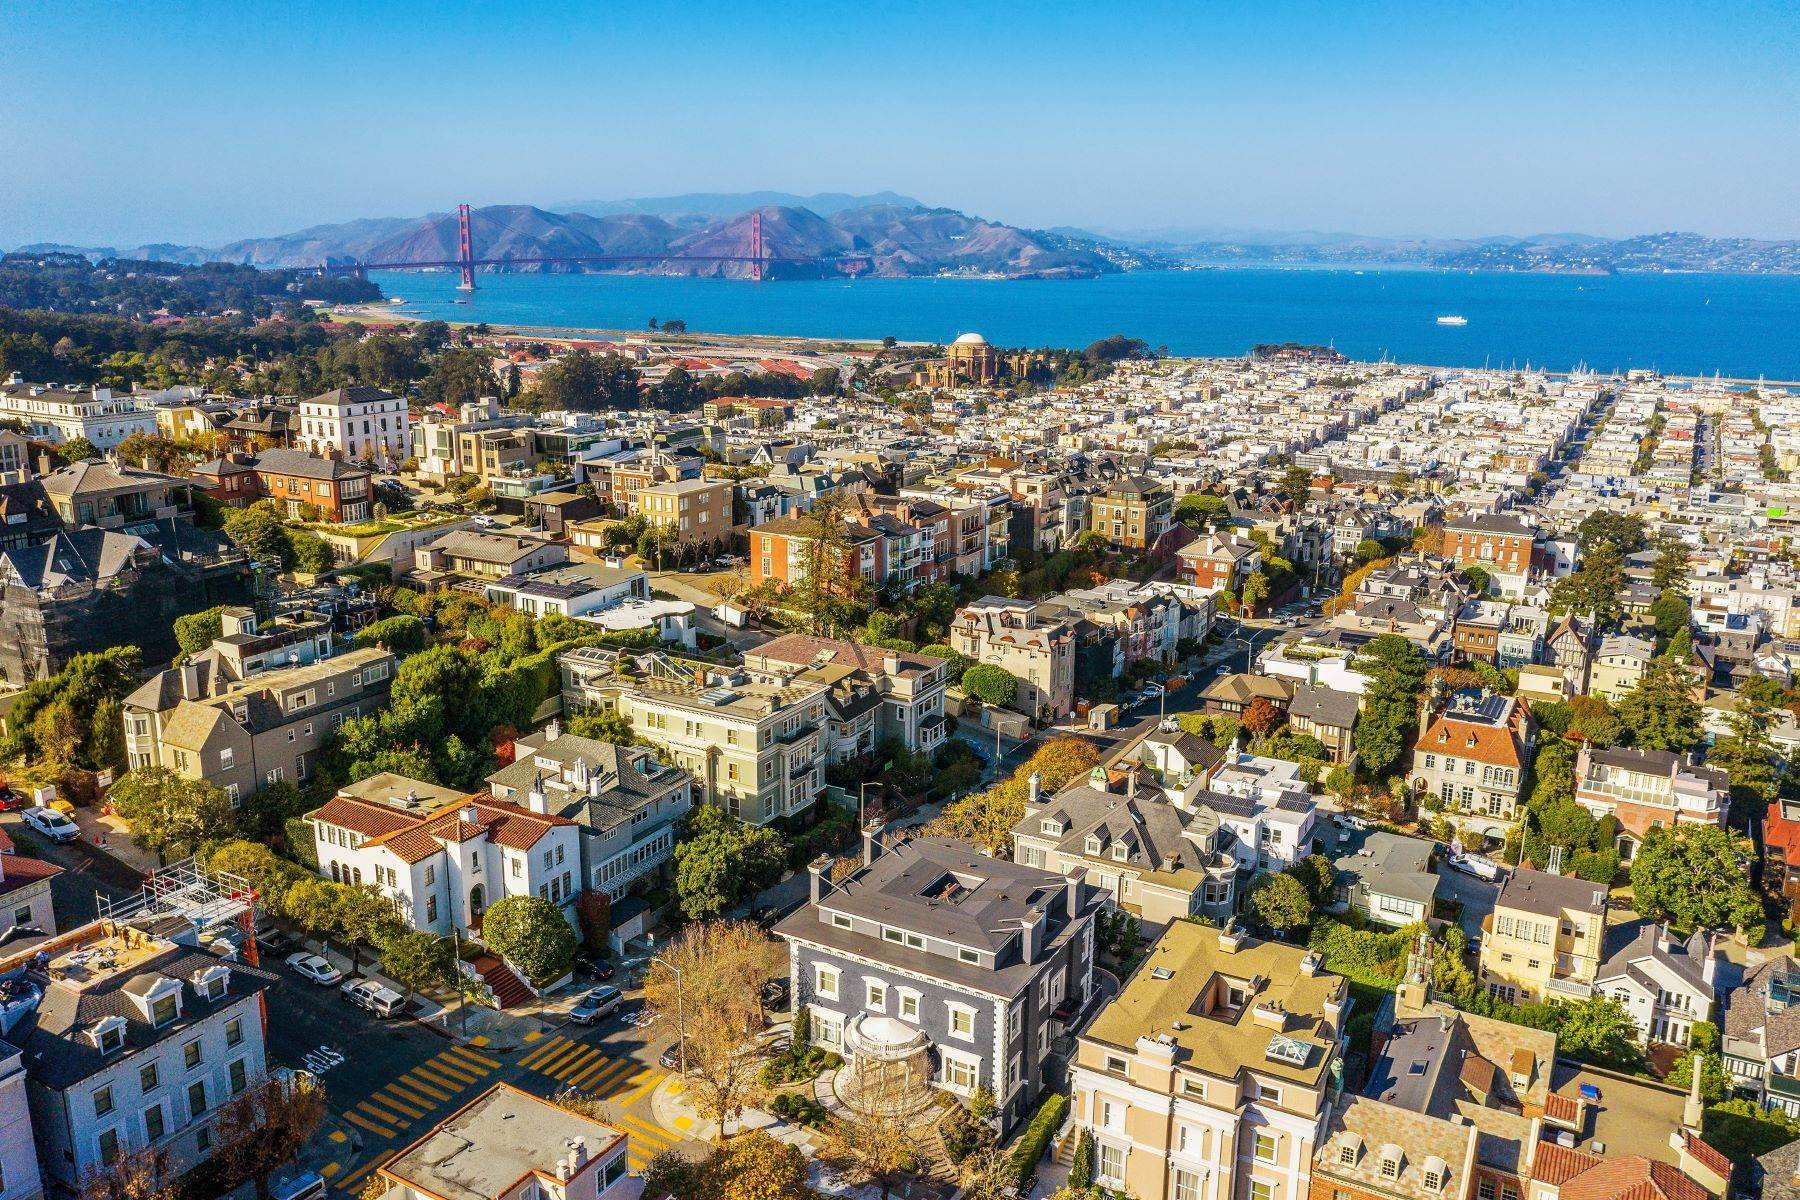 Property for Sale at Timeless And Glamorous Pacific Heights Designer Masterpiece 2698 Pacific Avenue San Francisco, California 94115 United States